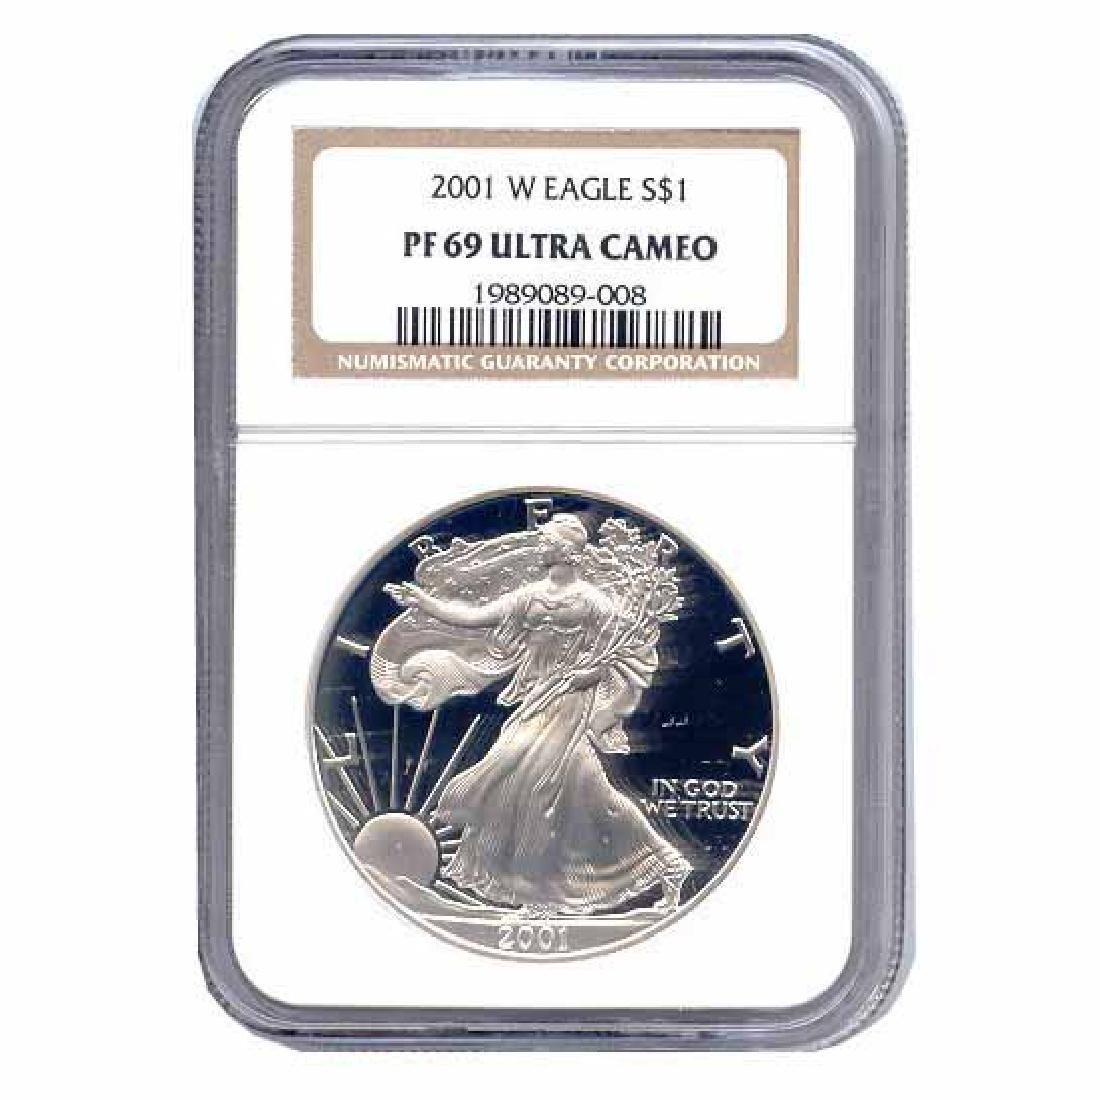 Certified Proof Silver Eagle PF69 2001